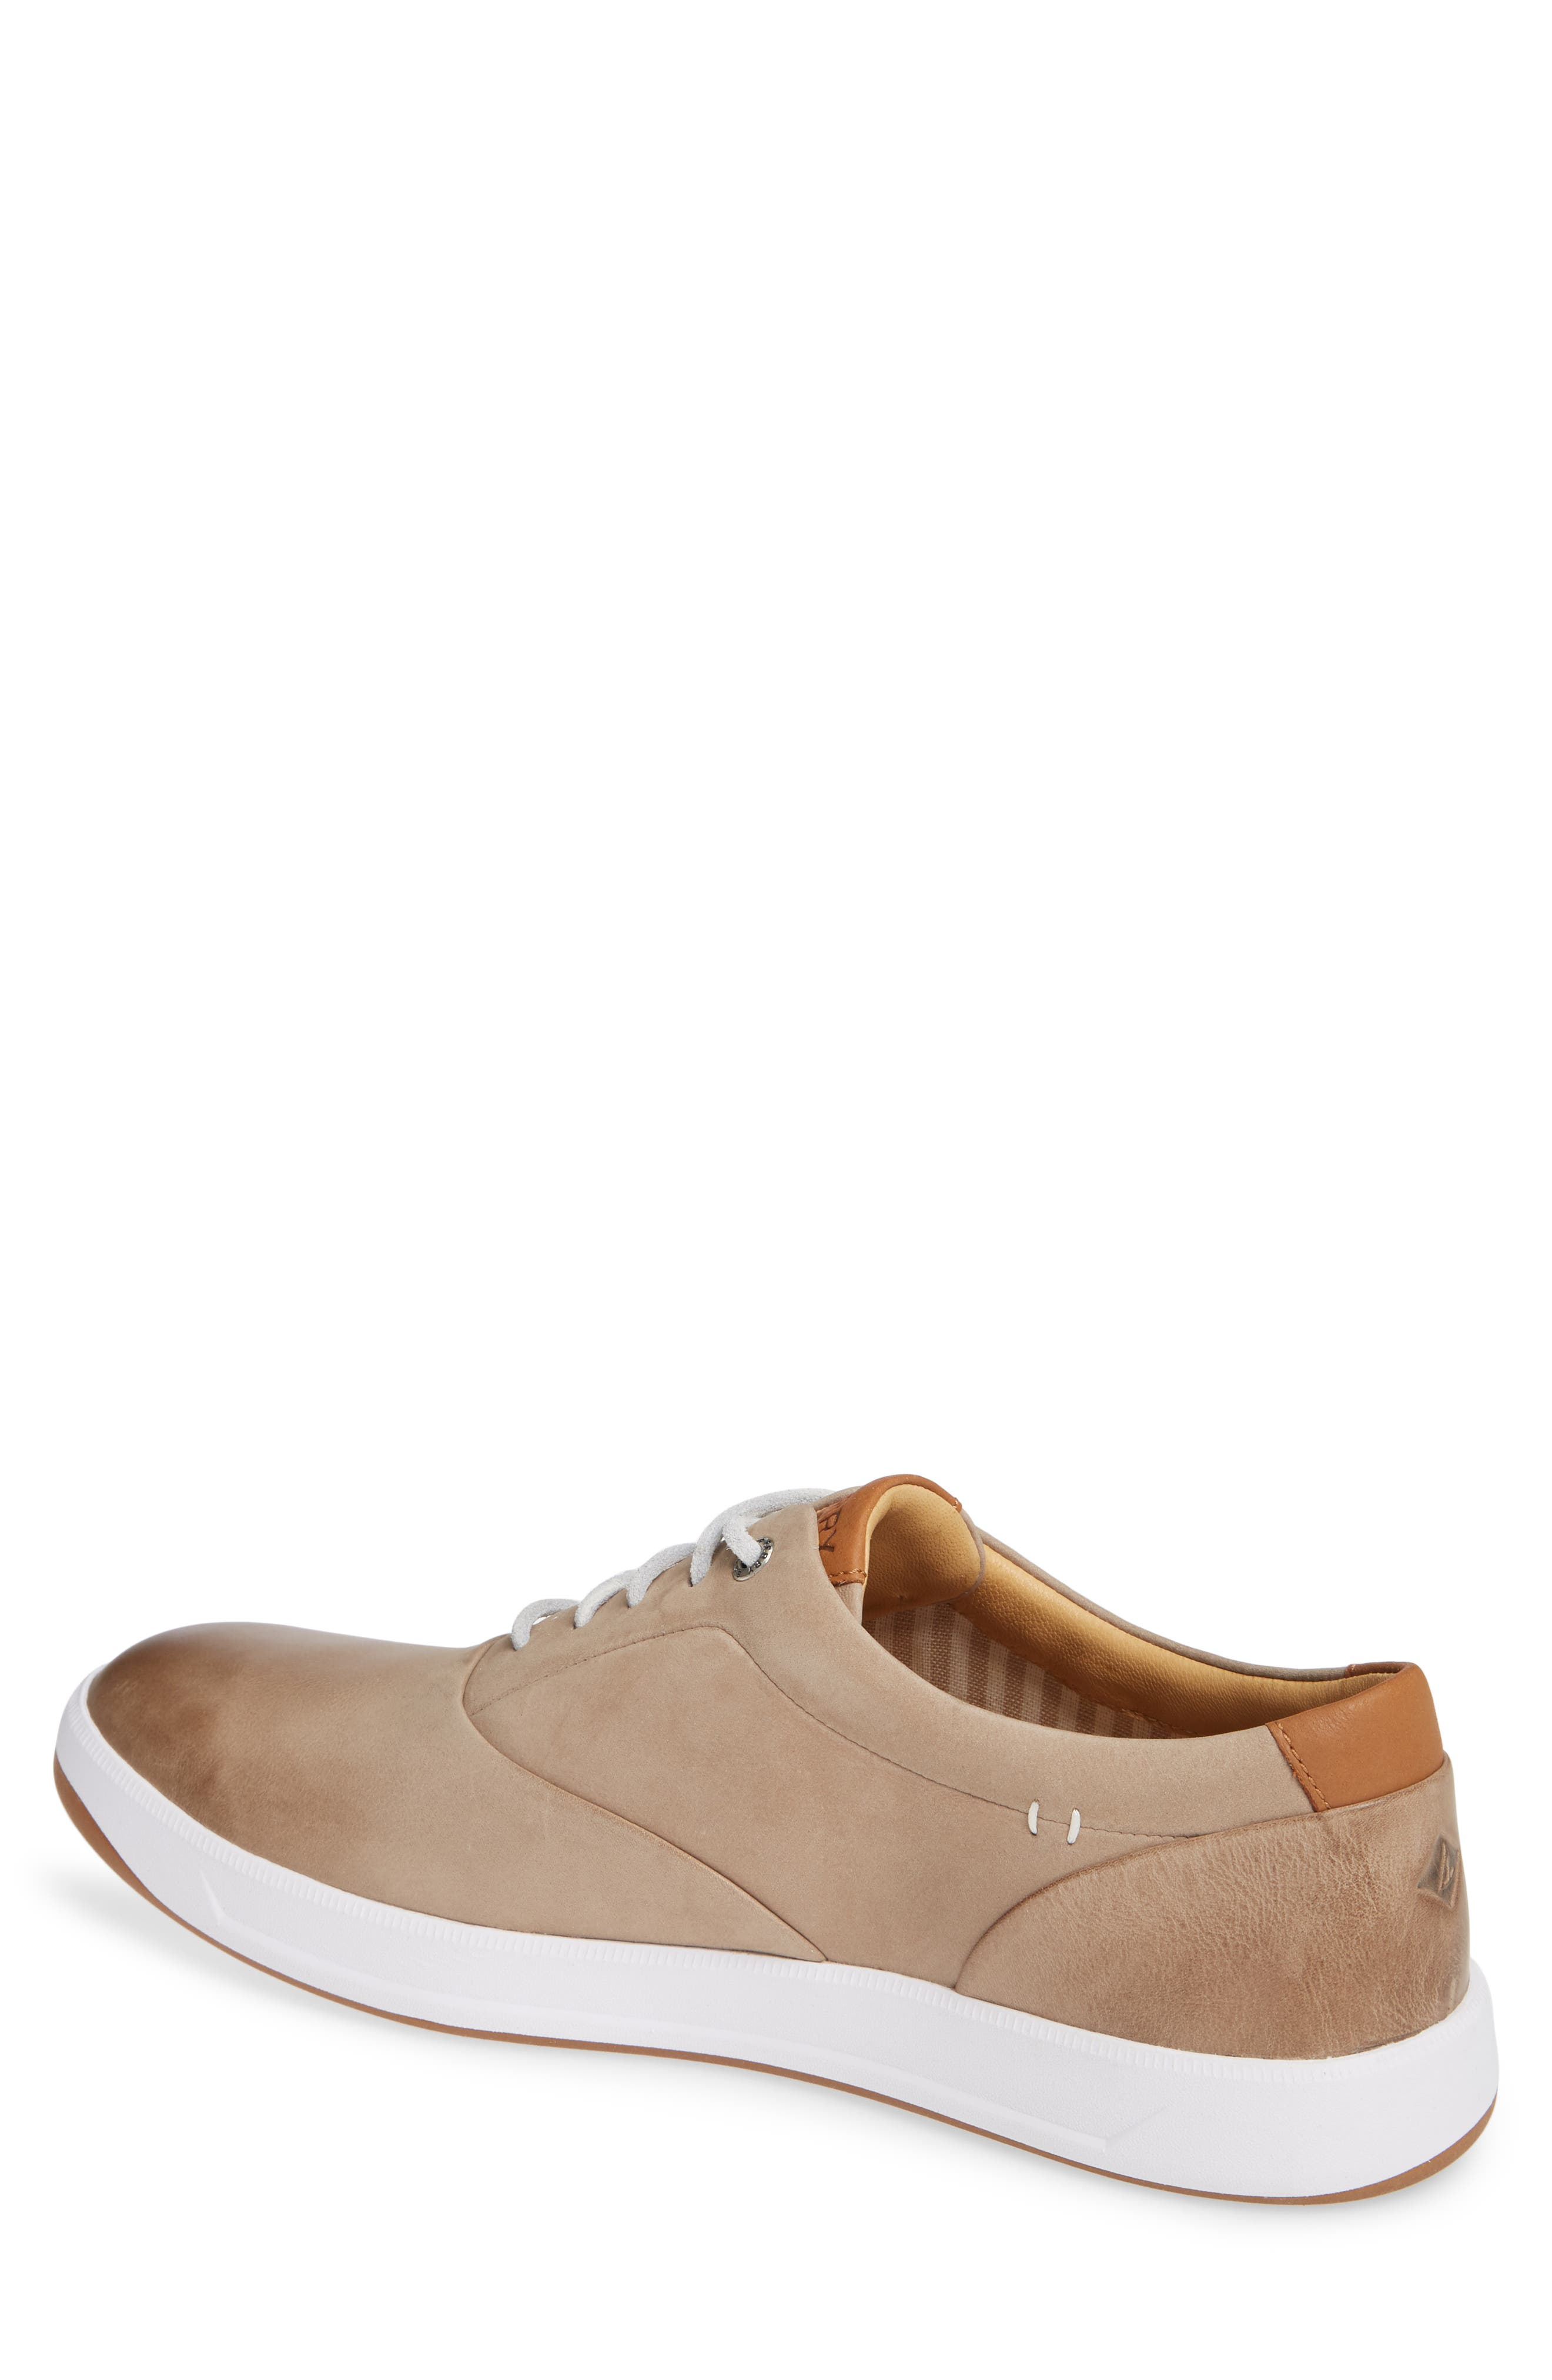 SPERRY, Gold Cup Richfield CVO Sneaker, Alternate thumbnail 2, color, DOVE